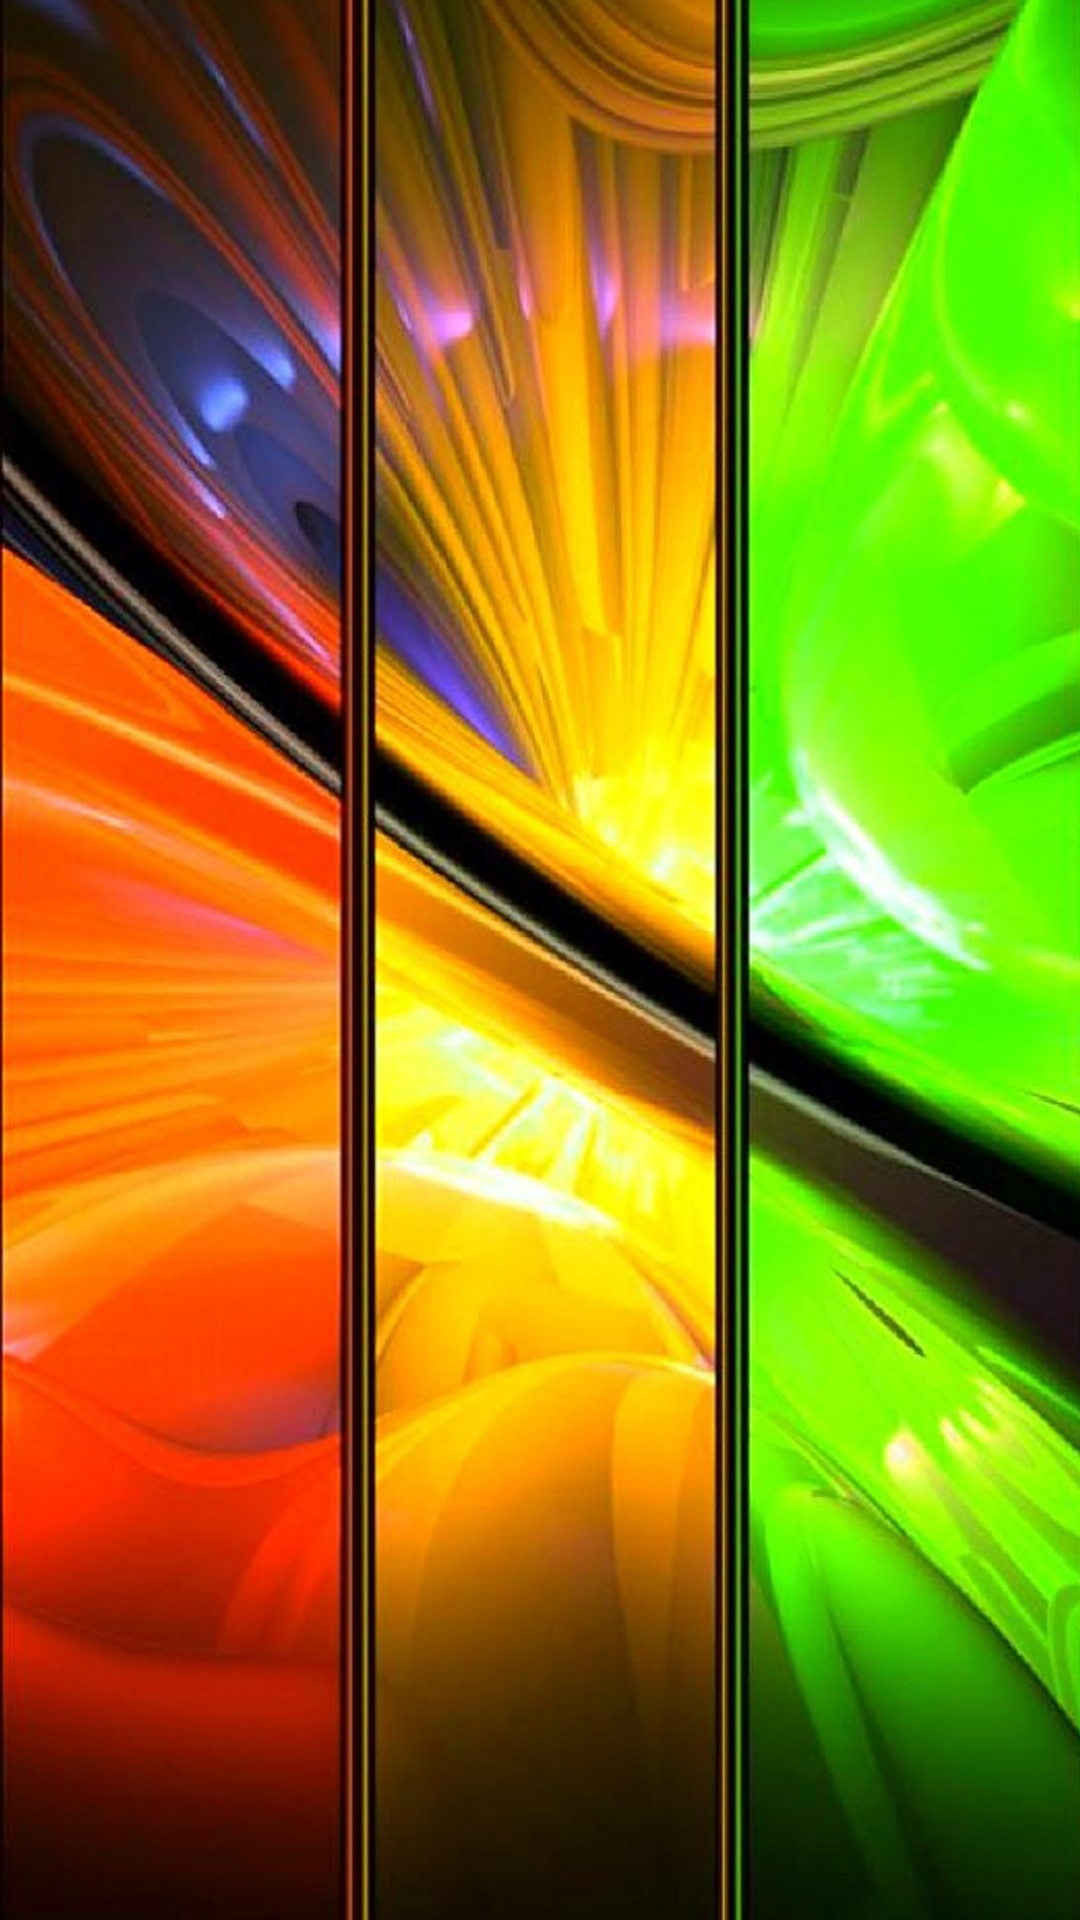 Wallpapers for Samsung Galaxy S4 - Thousands of HD Wallpapers for ...